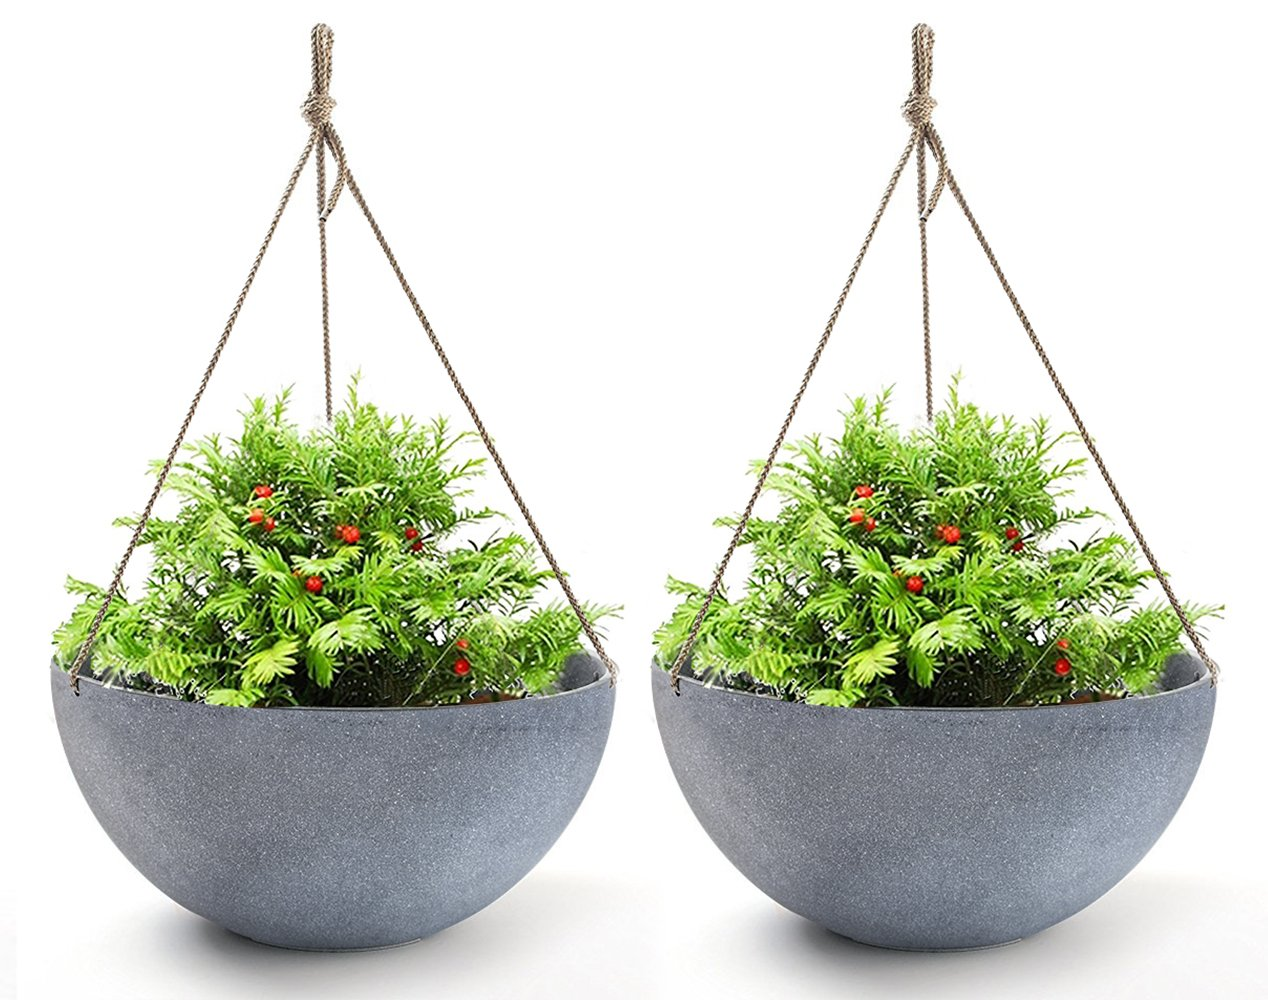 Hanging Planters Large 13.2 In Resin Flower Pots Outdoor, Garden Planters for Plants, Large Grey, Set of 2 by LA JOLIE MUSE